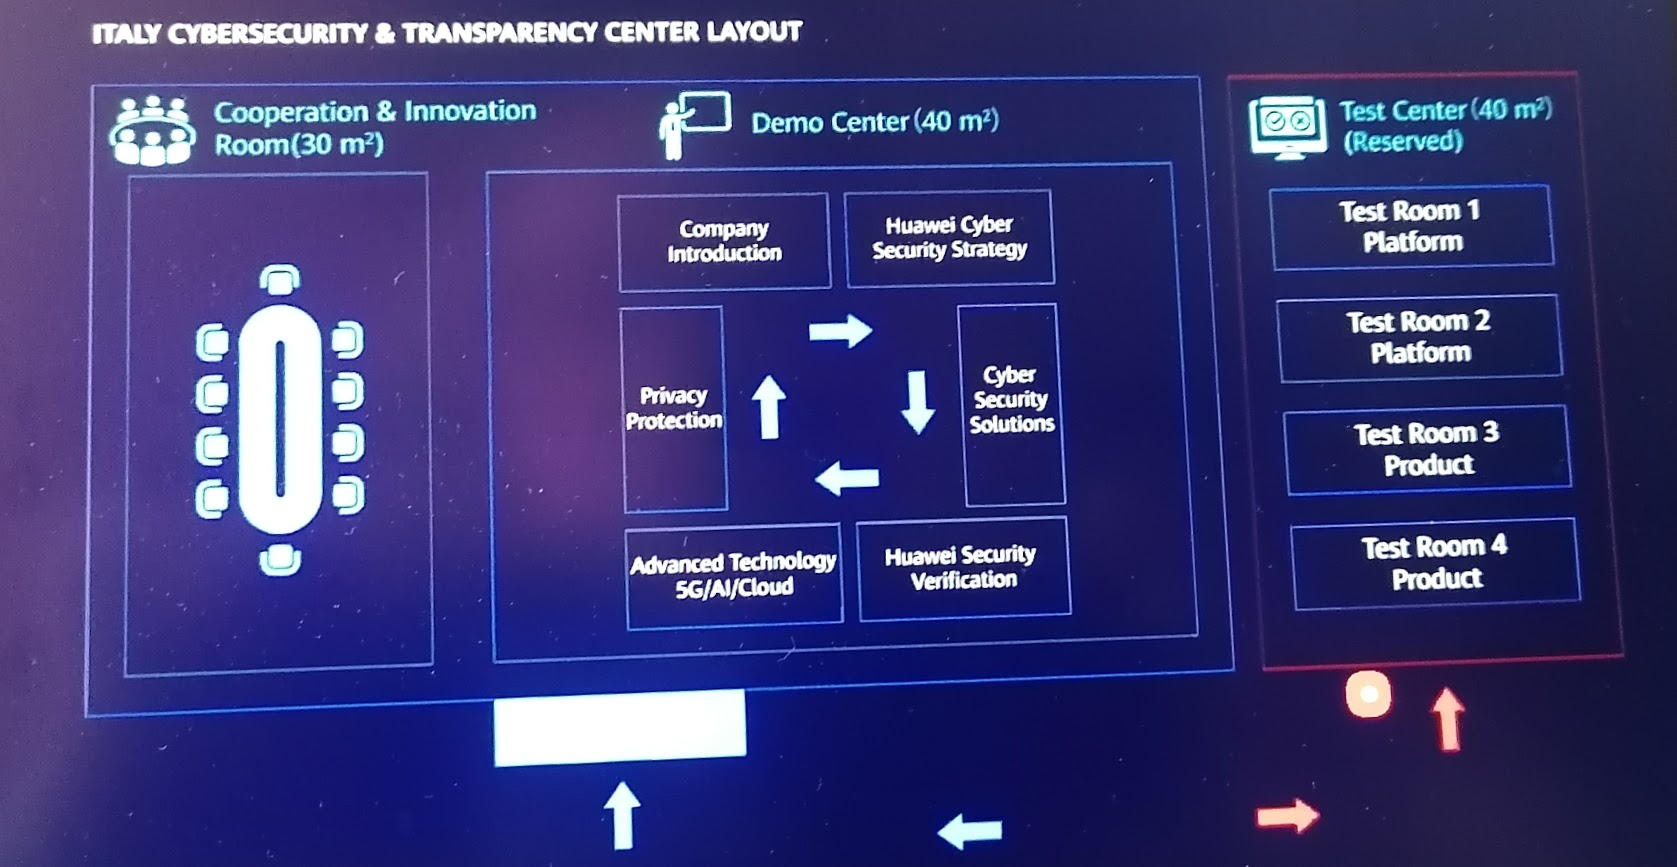 Huawei - Italy Cybertsecurity & Trasparency Center Layout